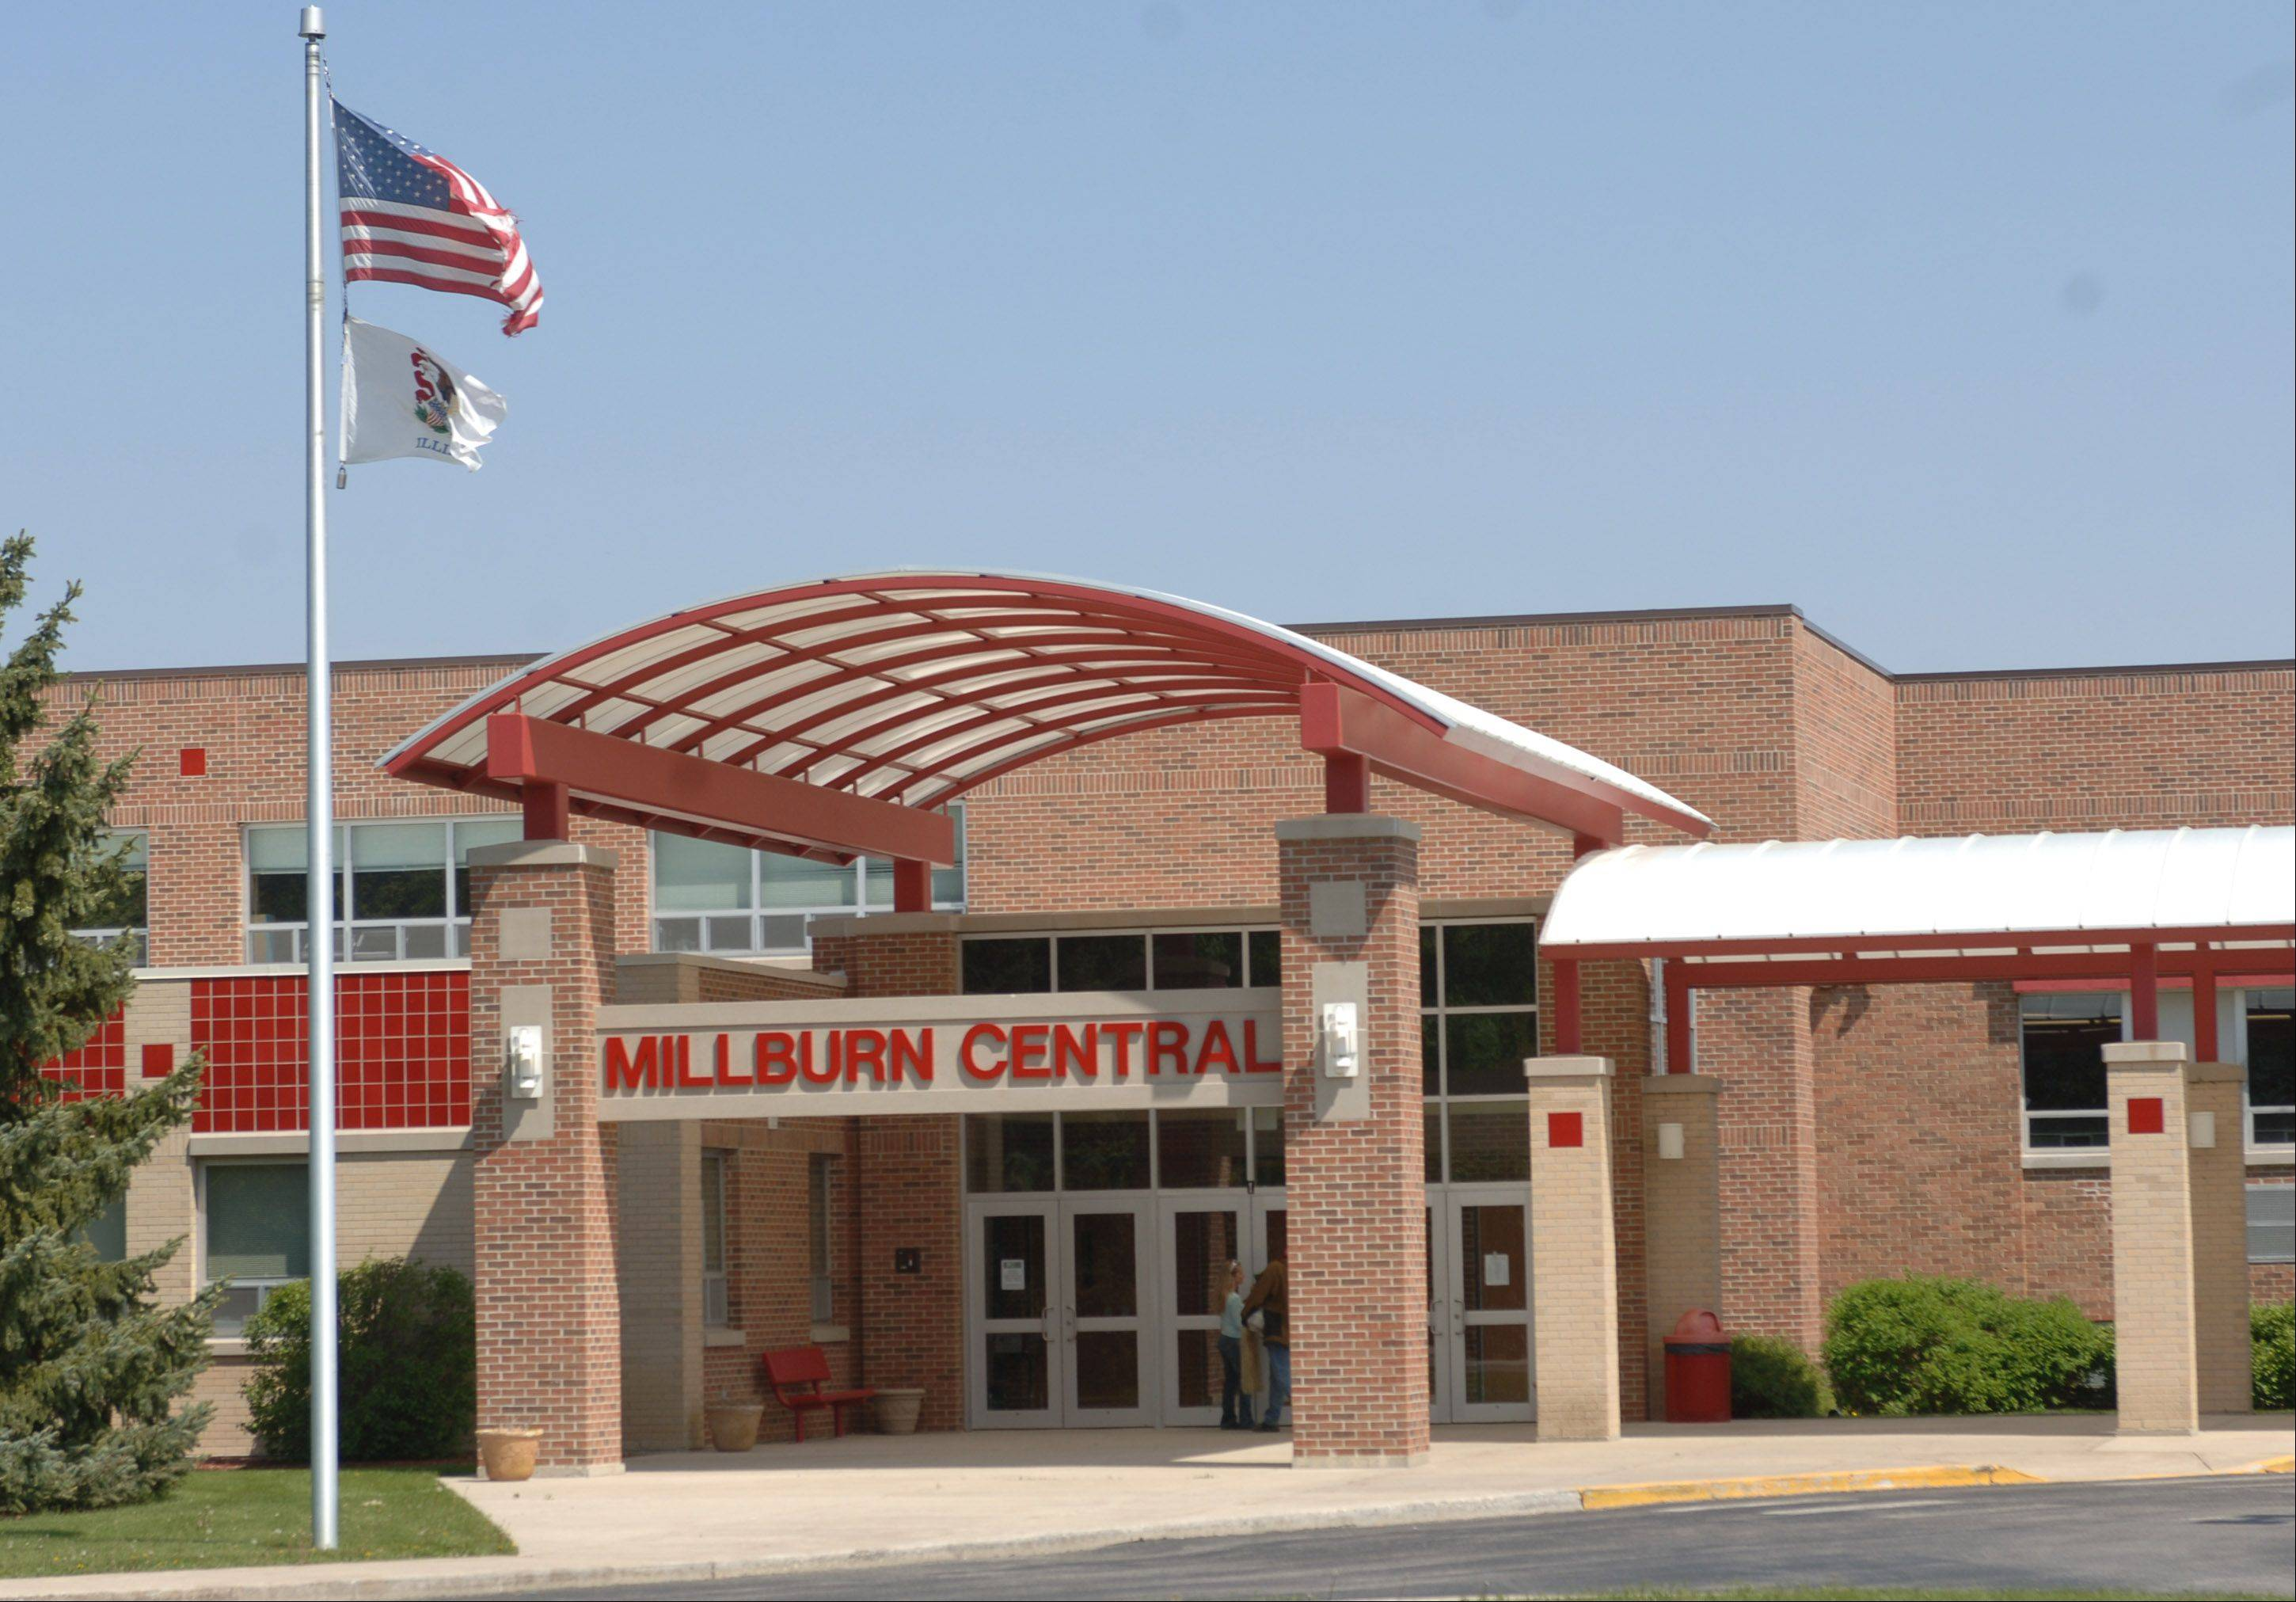 Daily Herald file, 2008Millburn Central School.